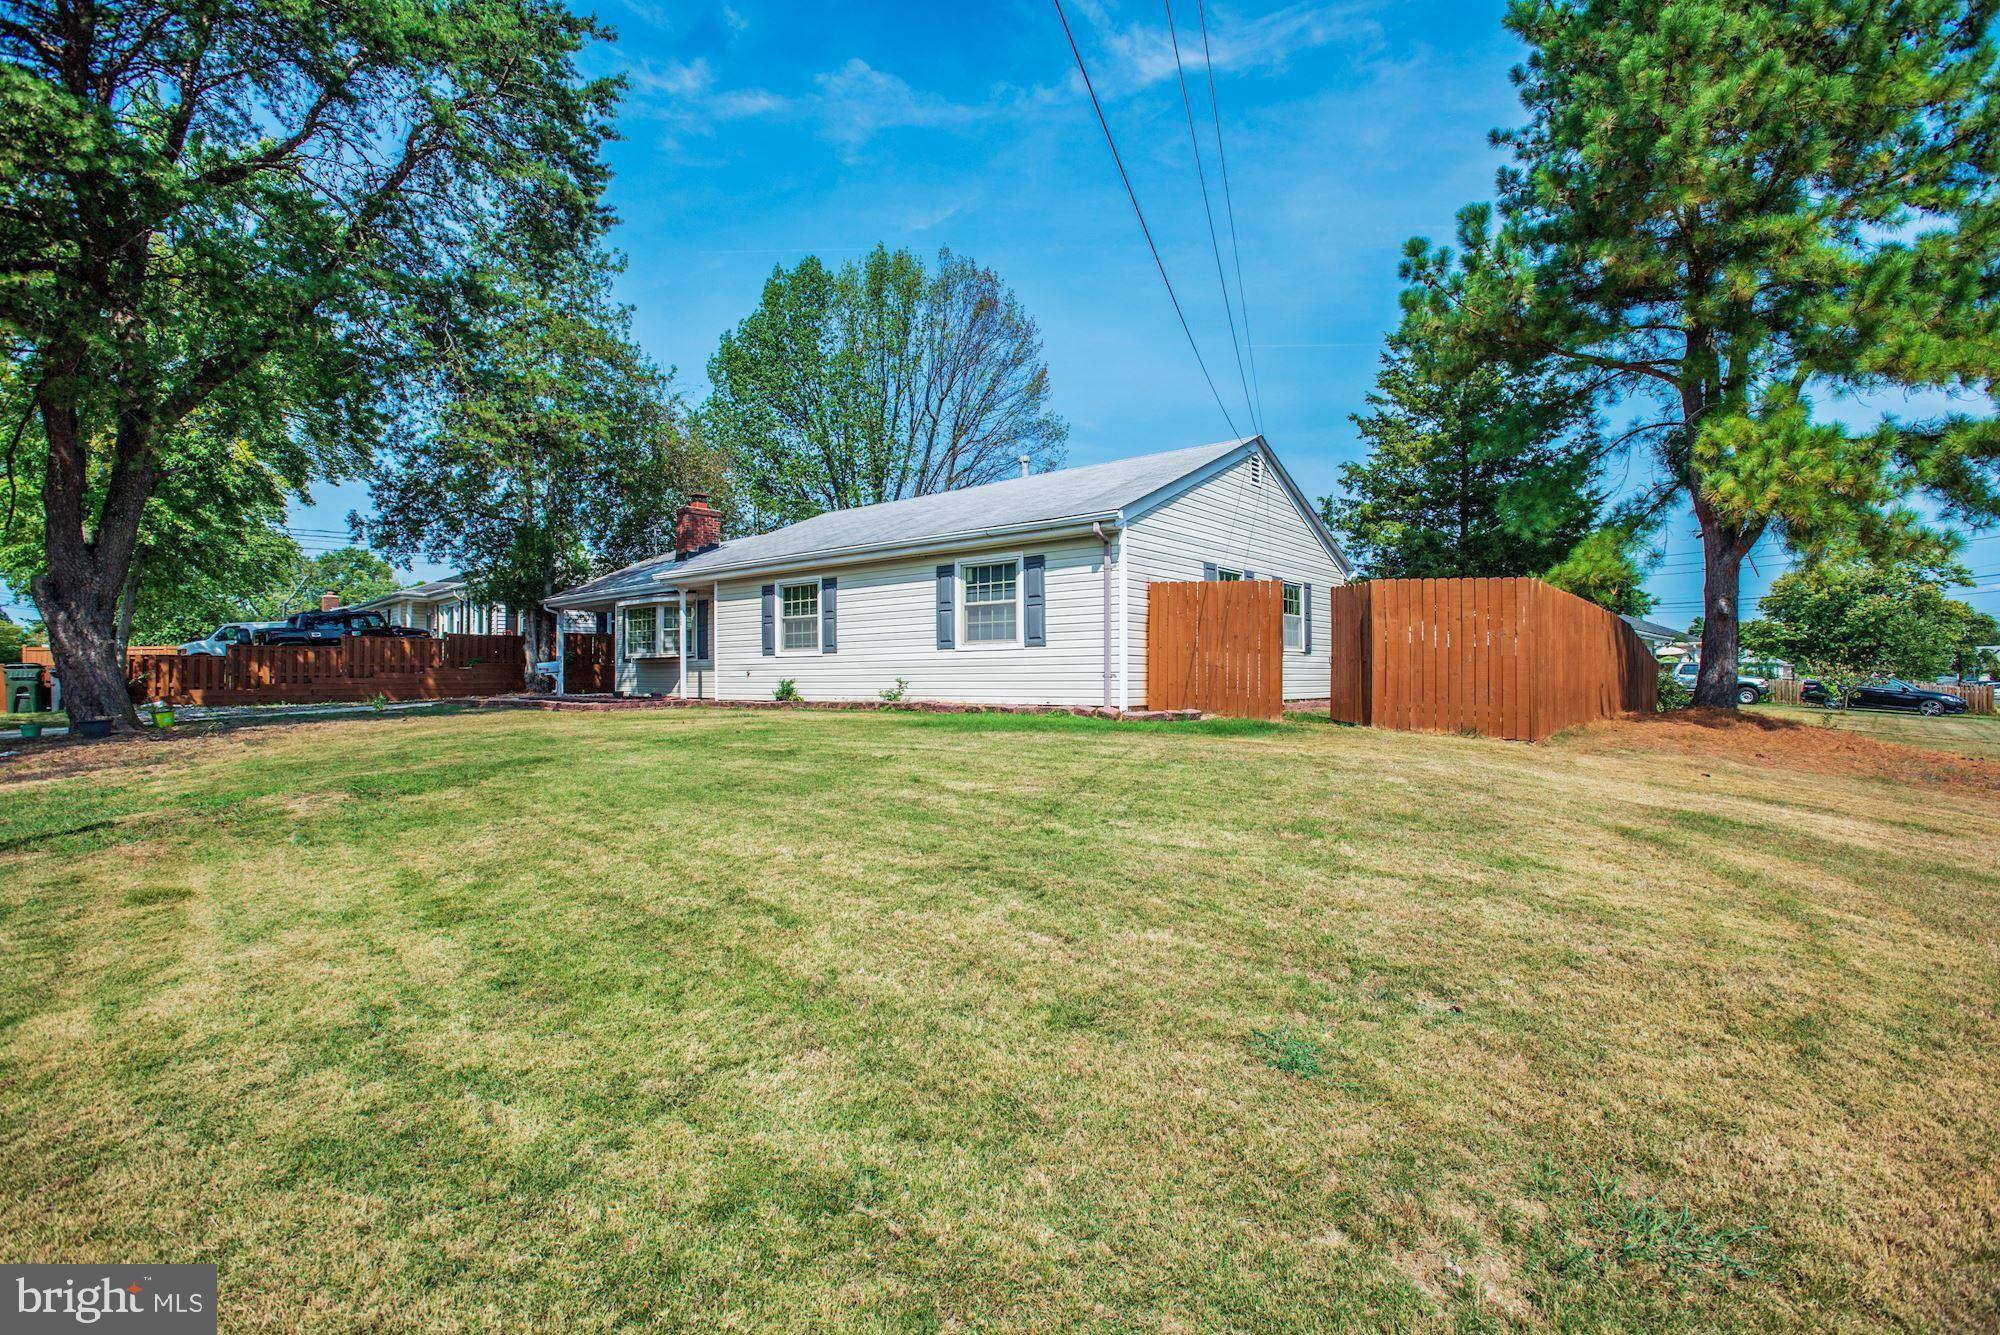 Welcome Home! One Level Living at its Best!! This 3BR, 2 full BA home with improvements is located on a huge corner lot in a quiet community. Improvements include remodeled kitchen, fresh paint throughout, and new patio in it's outside space. Terrific location - optimal for commuters as it's located less than 5 minutes away from 495/95/395. Close to Springfield Town Center, Springfield Metro, and Kingstown.